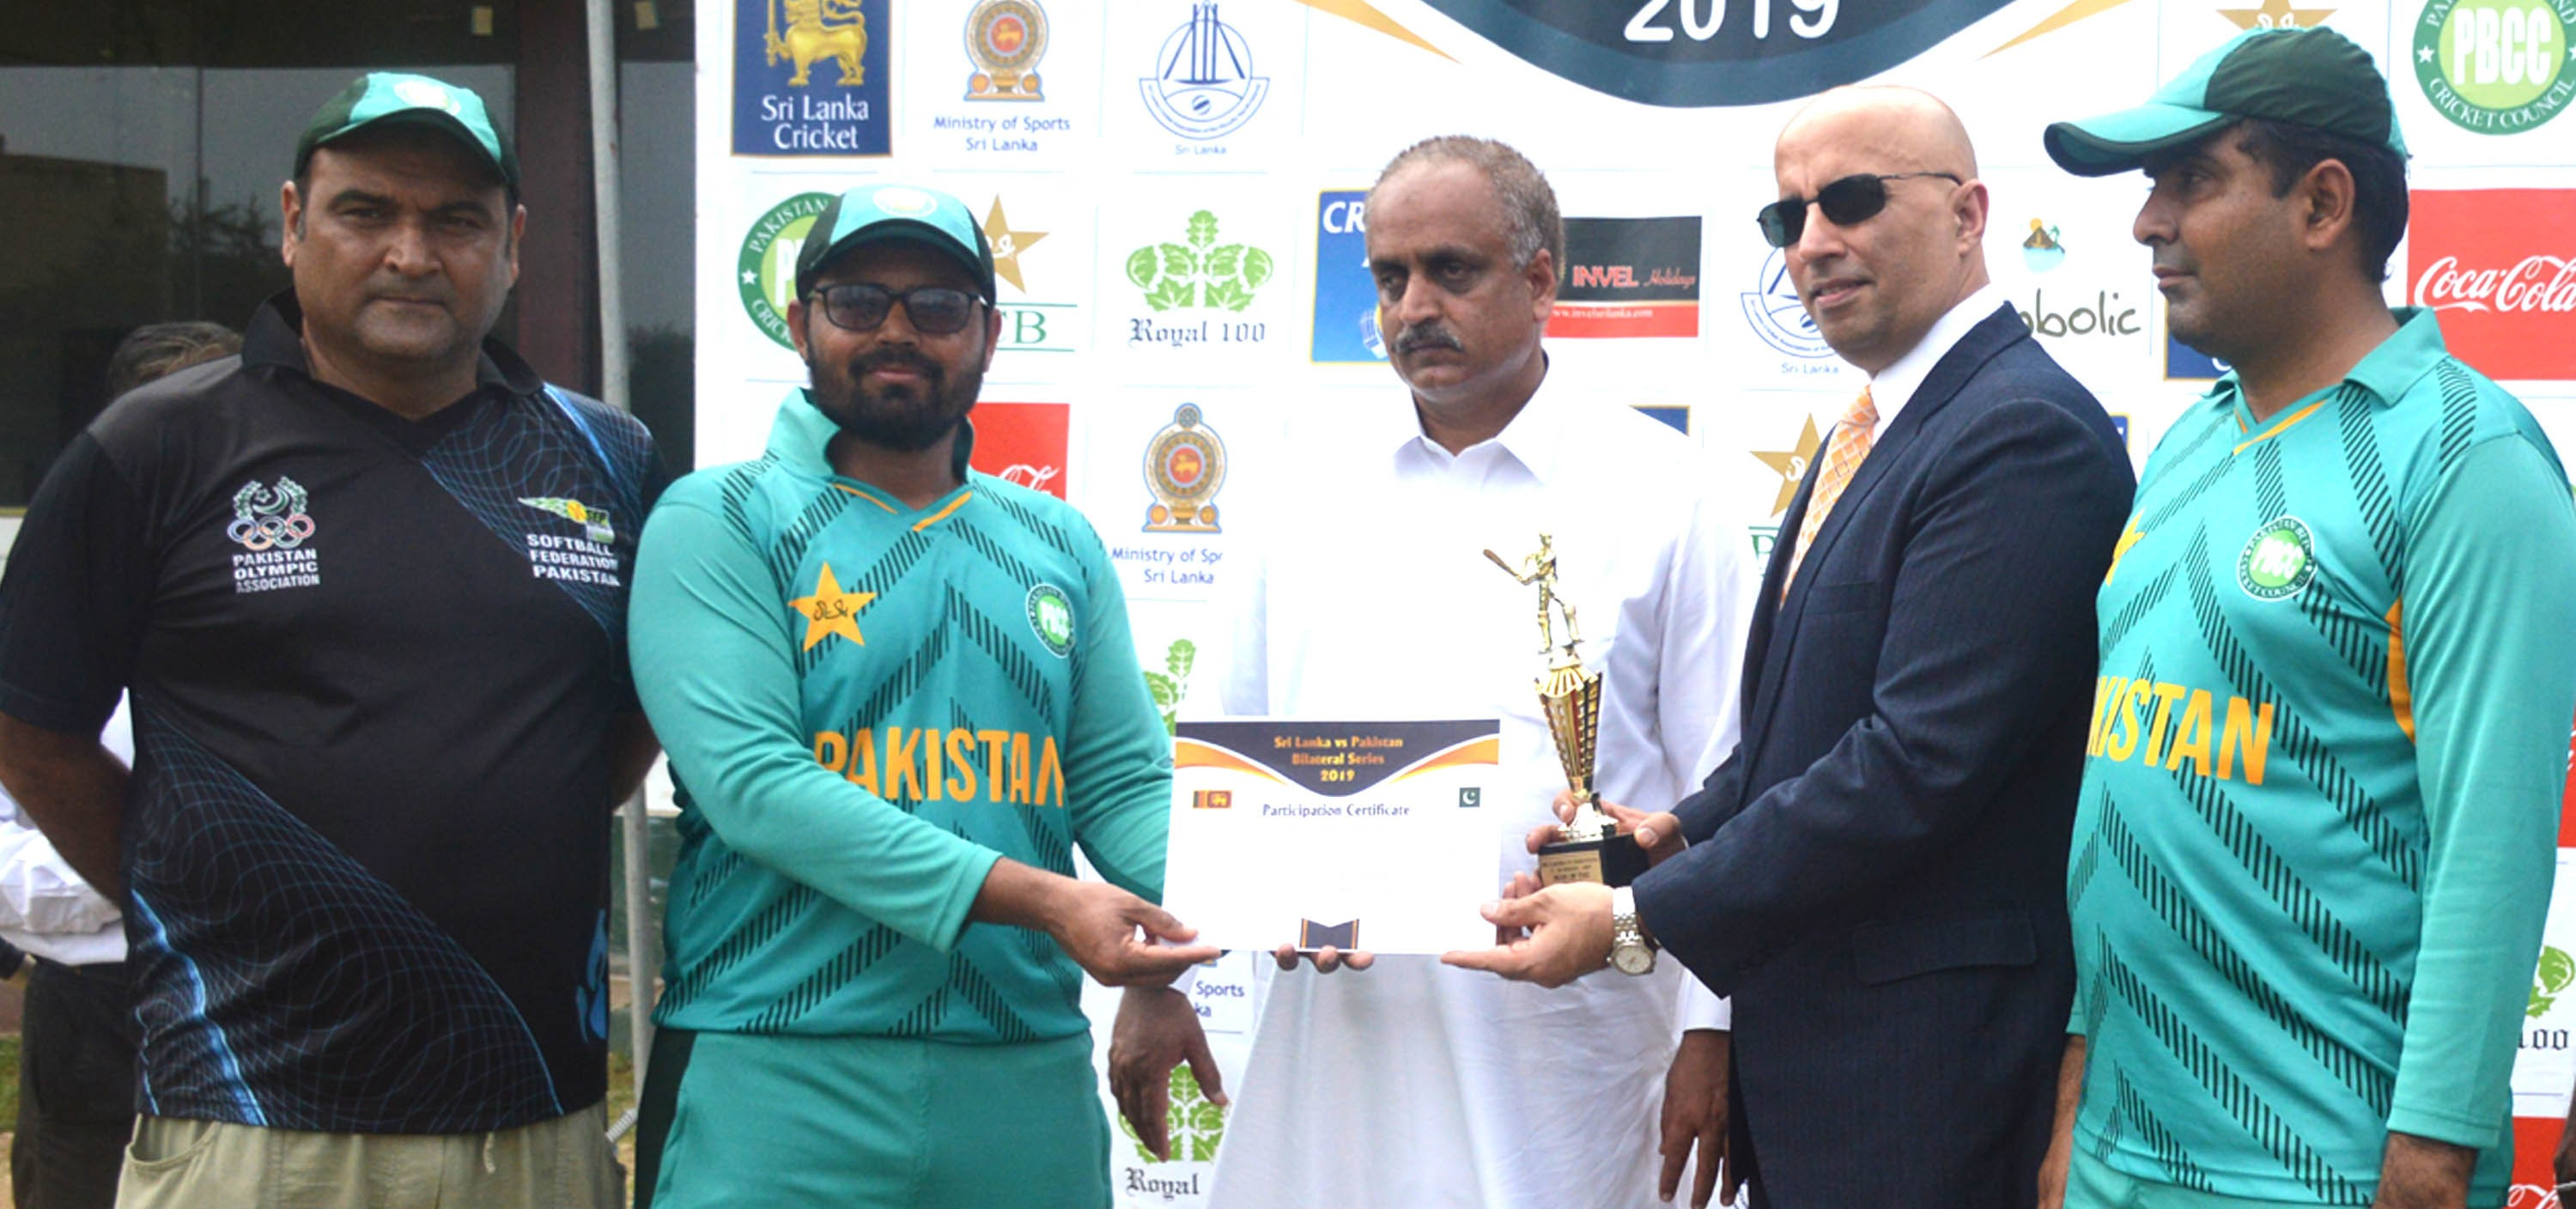 Pakistan vs Sri Lanka Blind Cricket Series